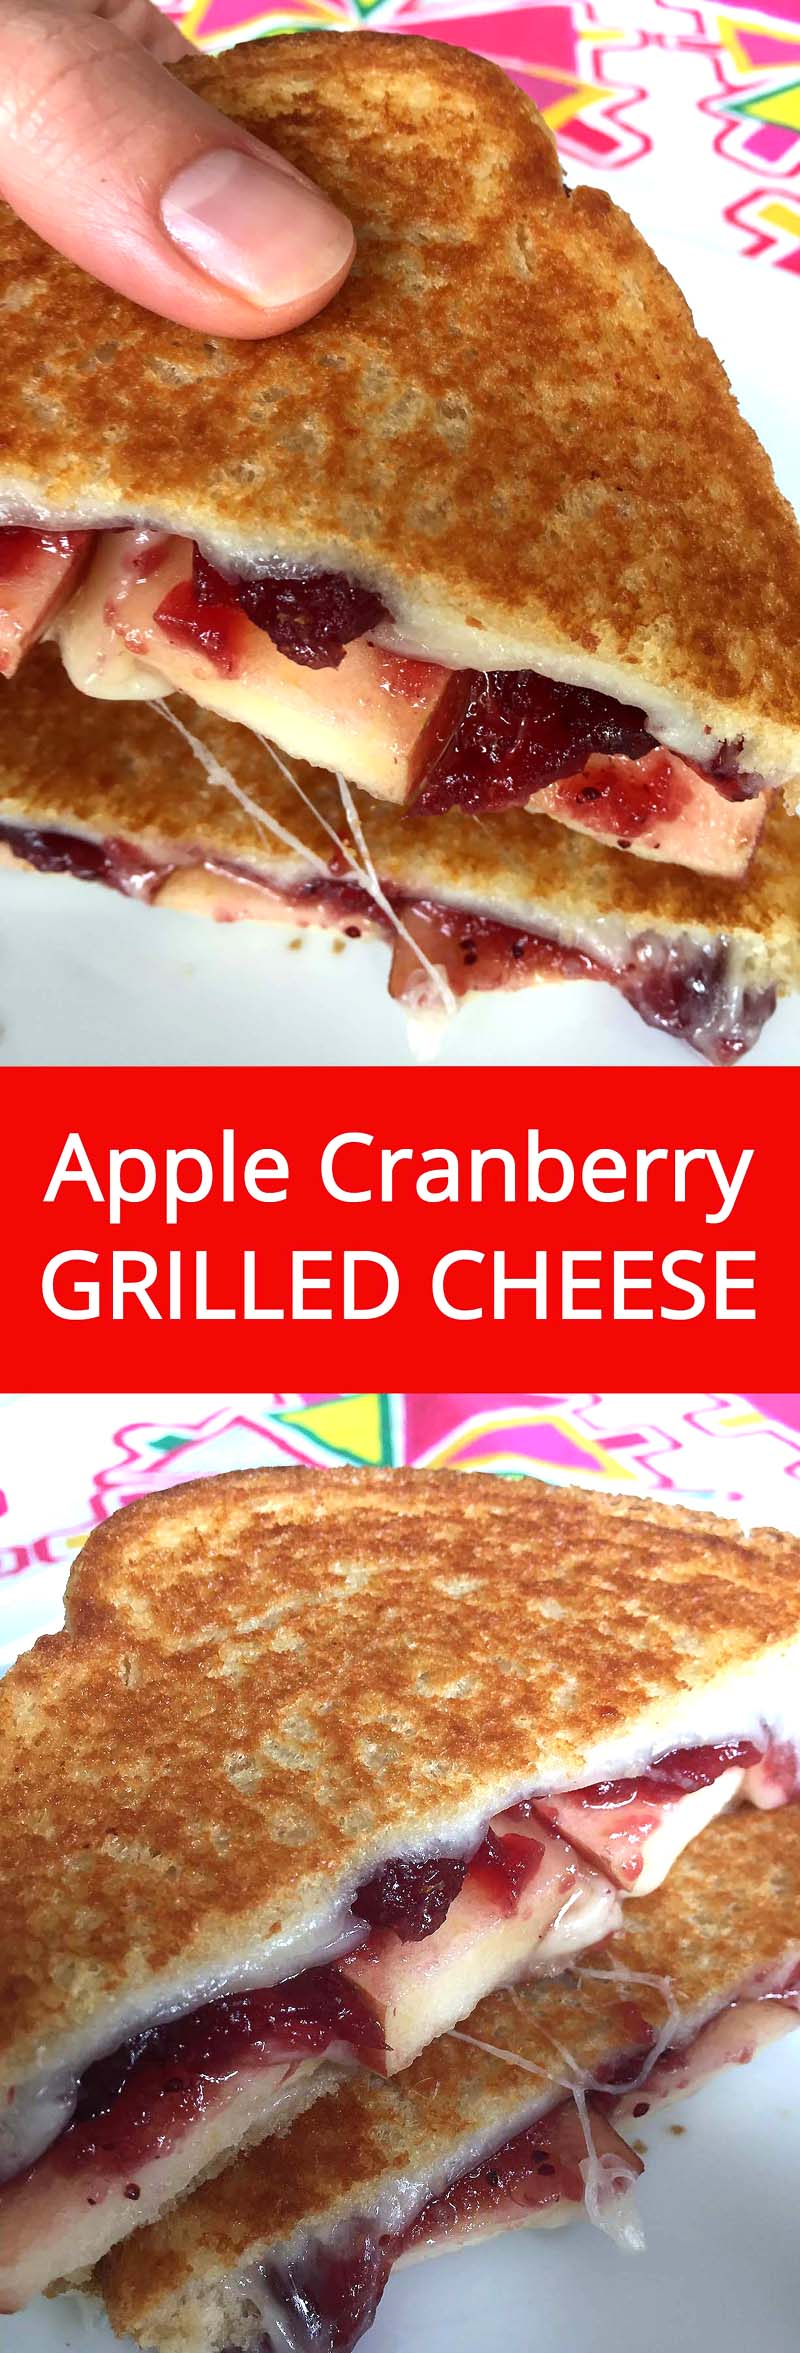 Apple Cranberry Grilled Cheese - mouthwatering!  I love this grilled cheese! | MelanieCooks.com